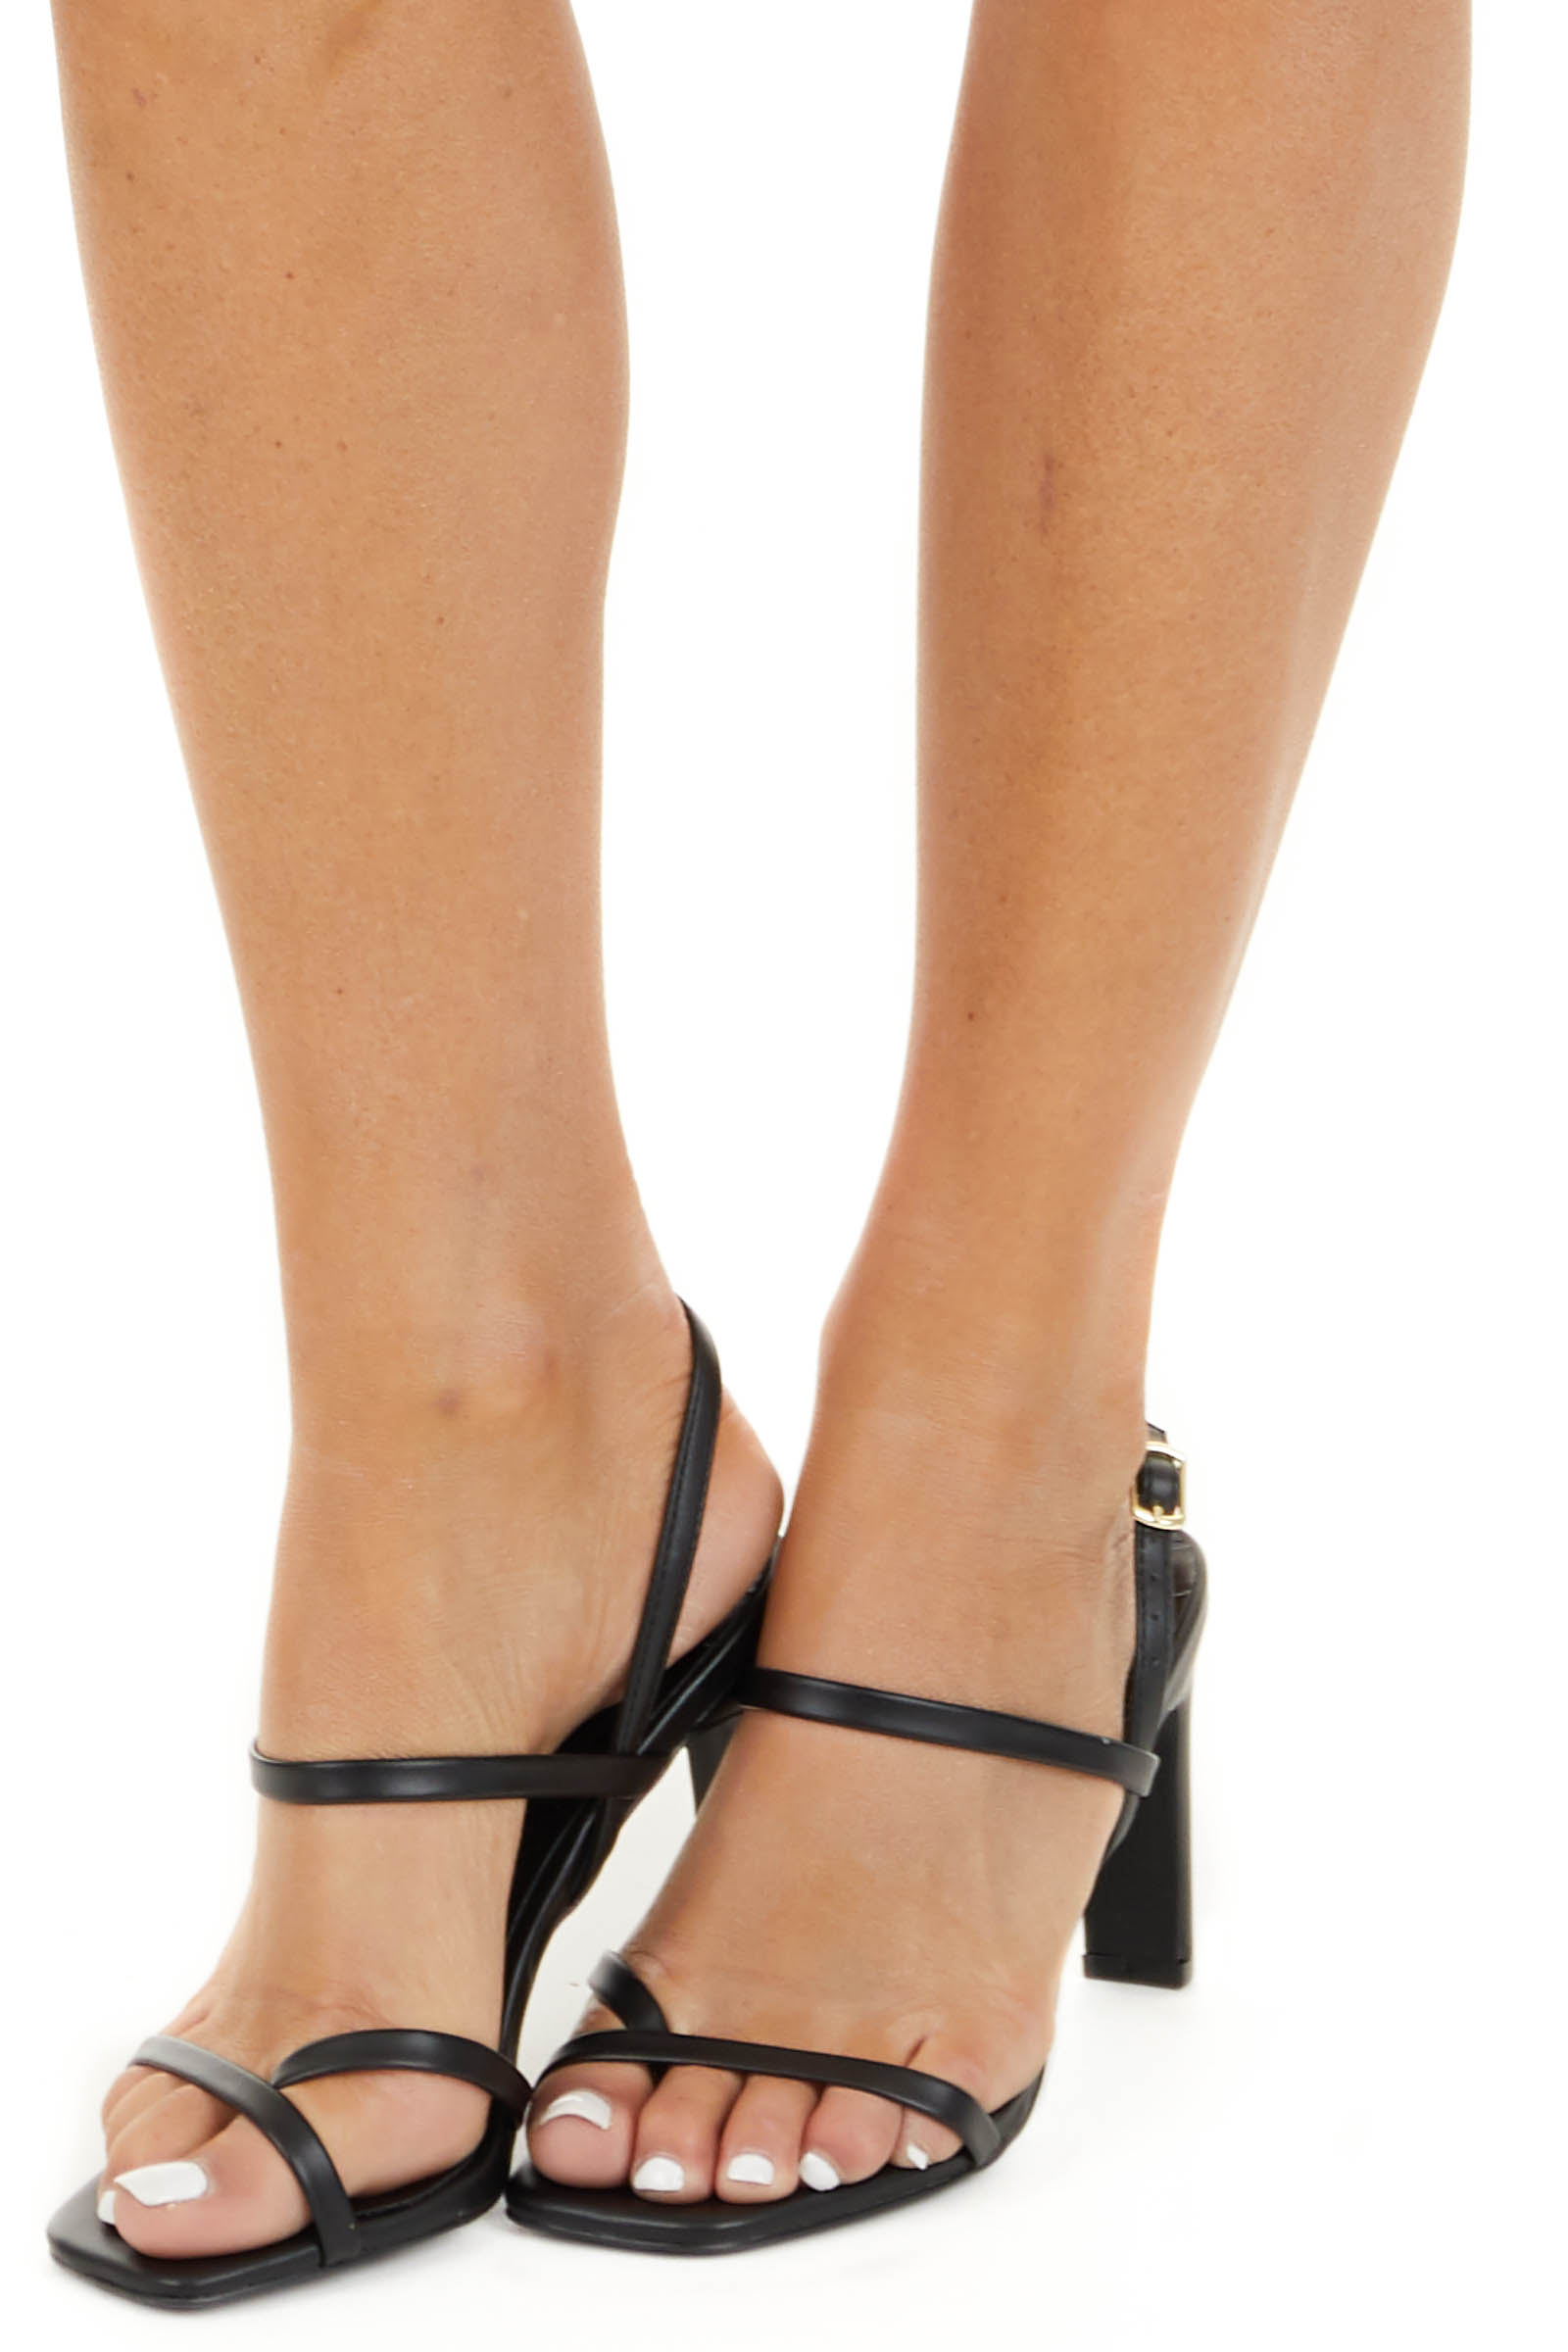 Black Square Toe Buckle Up Strappy High Heel Sandals side view